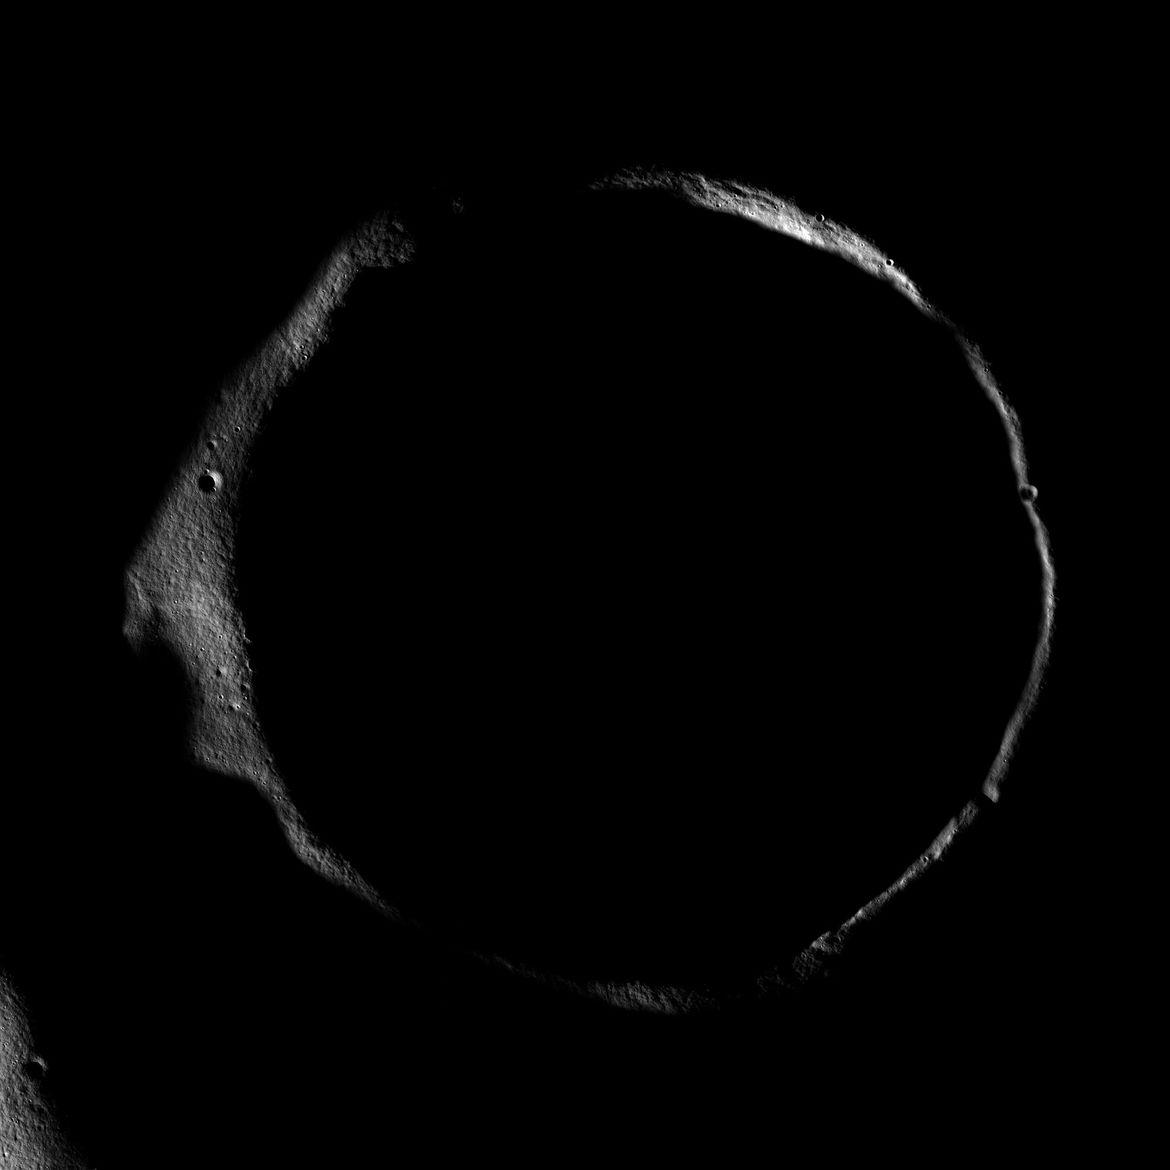 Erlanger crater, near the Moon's north pole, with just its rim lit by low sunlight. Credit:NASA/GSFC/Arizona State University